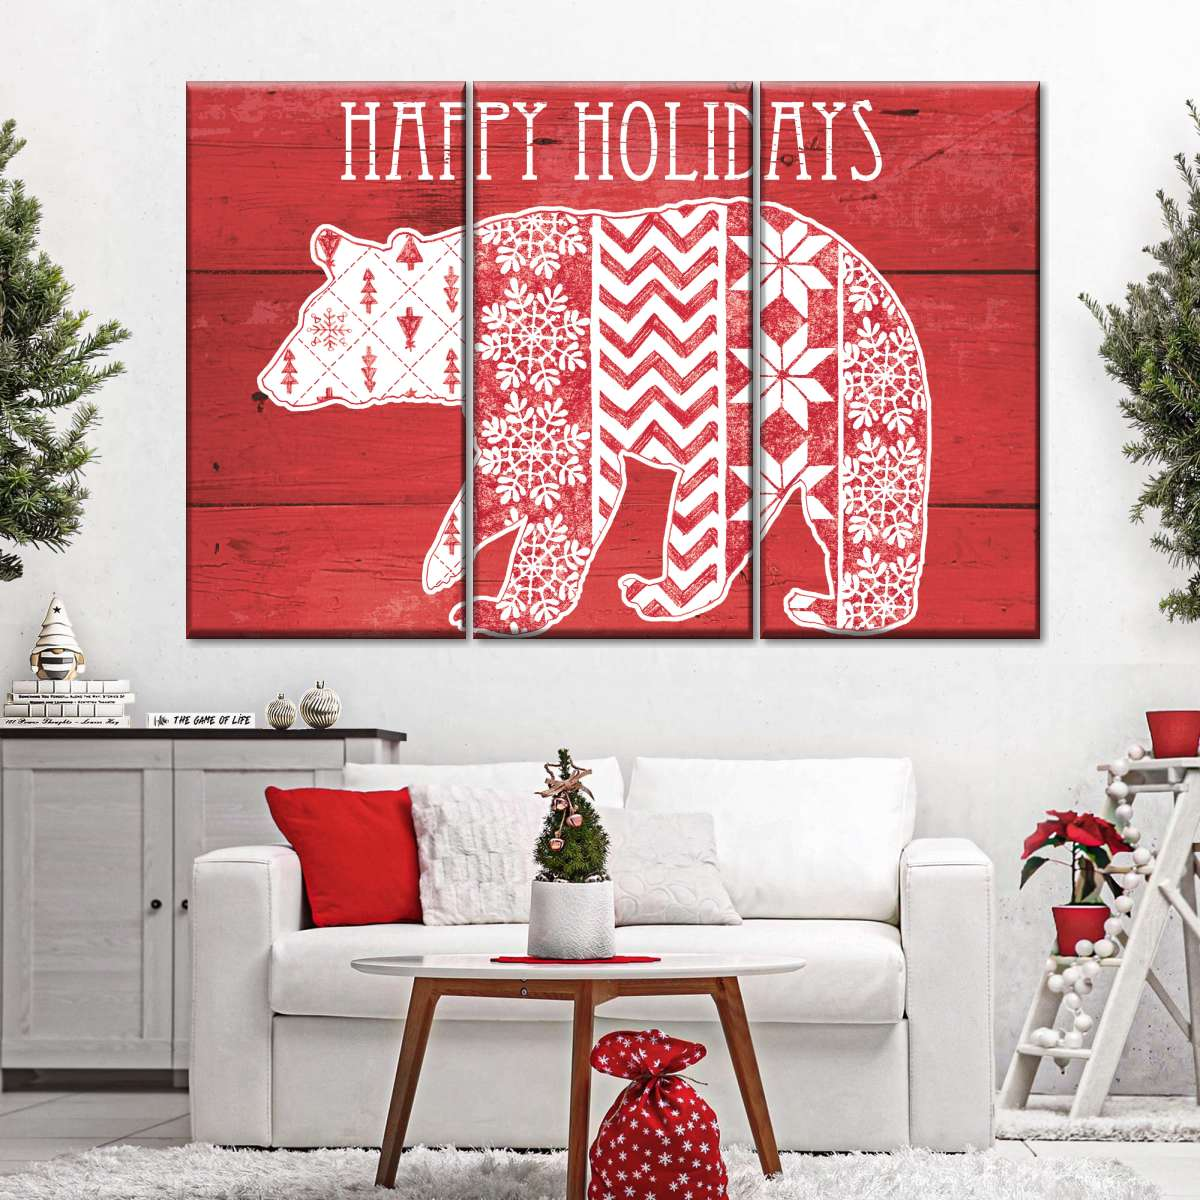 https://www.elephantstock.com/collections/christmas-wall-art